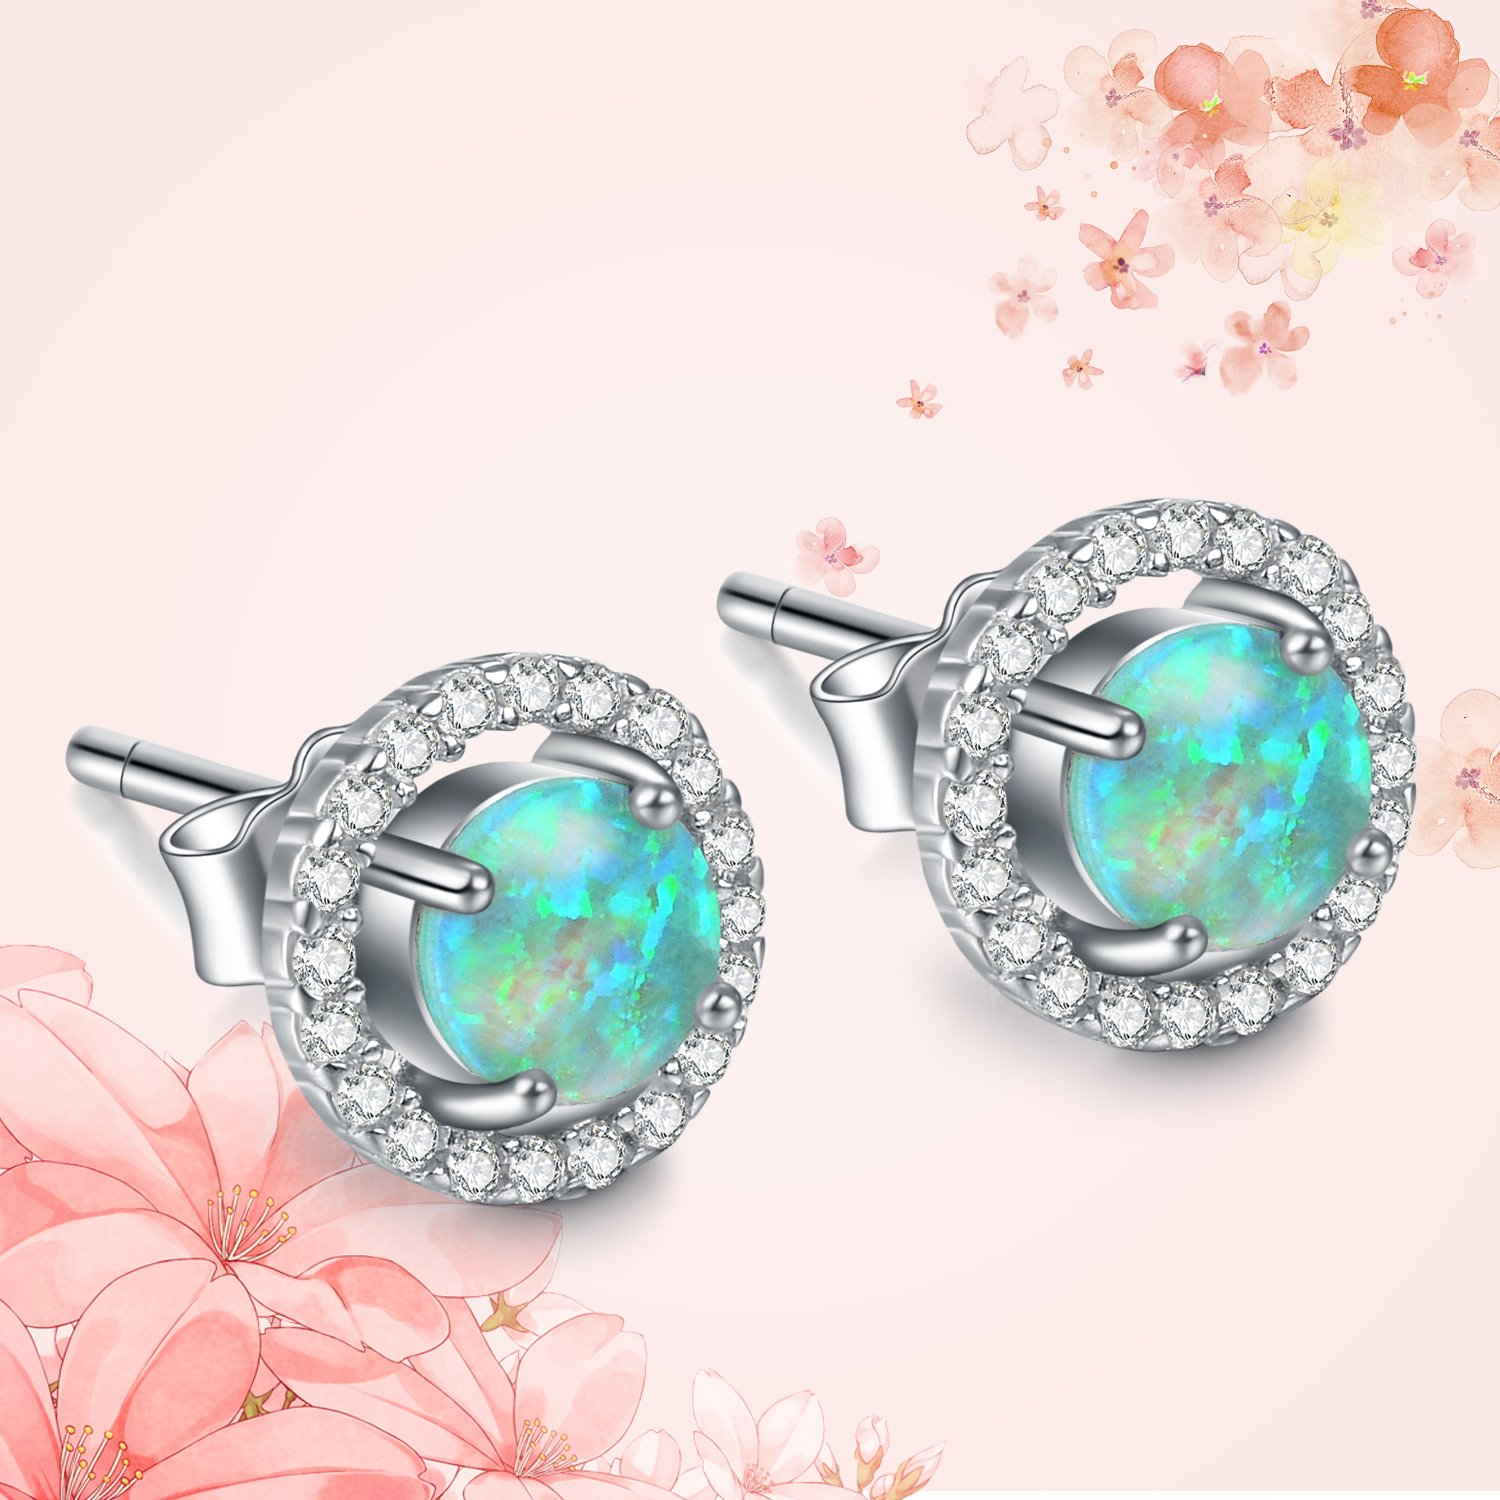 1e583ea69 Amazon.com: Sterling Silver Simulated Opal Earring Studs, Halo Earrings,  Cubic Zirconia Halo Earrings for Women Jewelry (Green): Jewelry